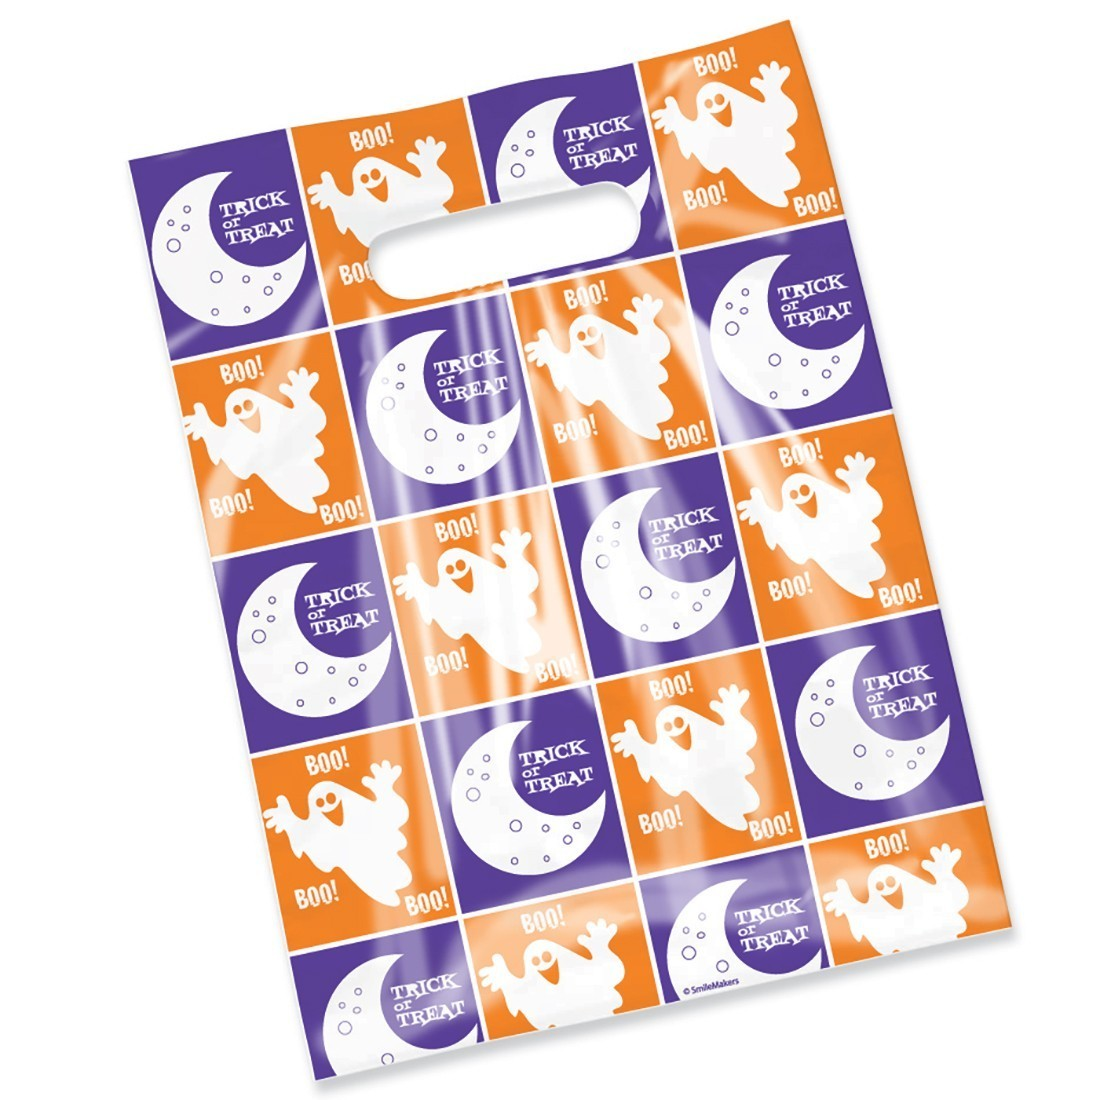 Trick or Treat Scatter Print Bags [image]